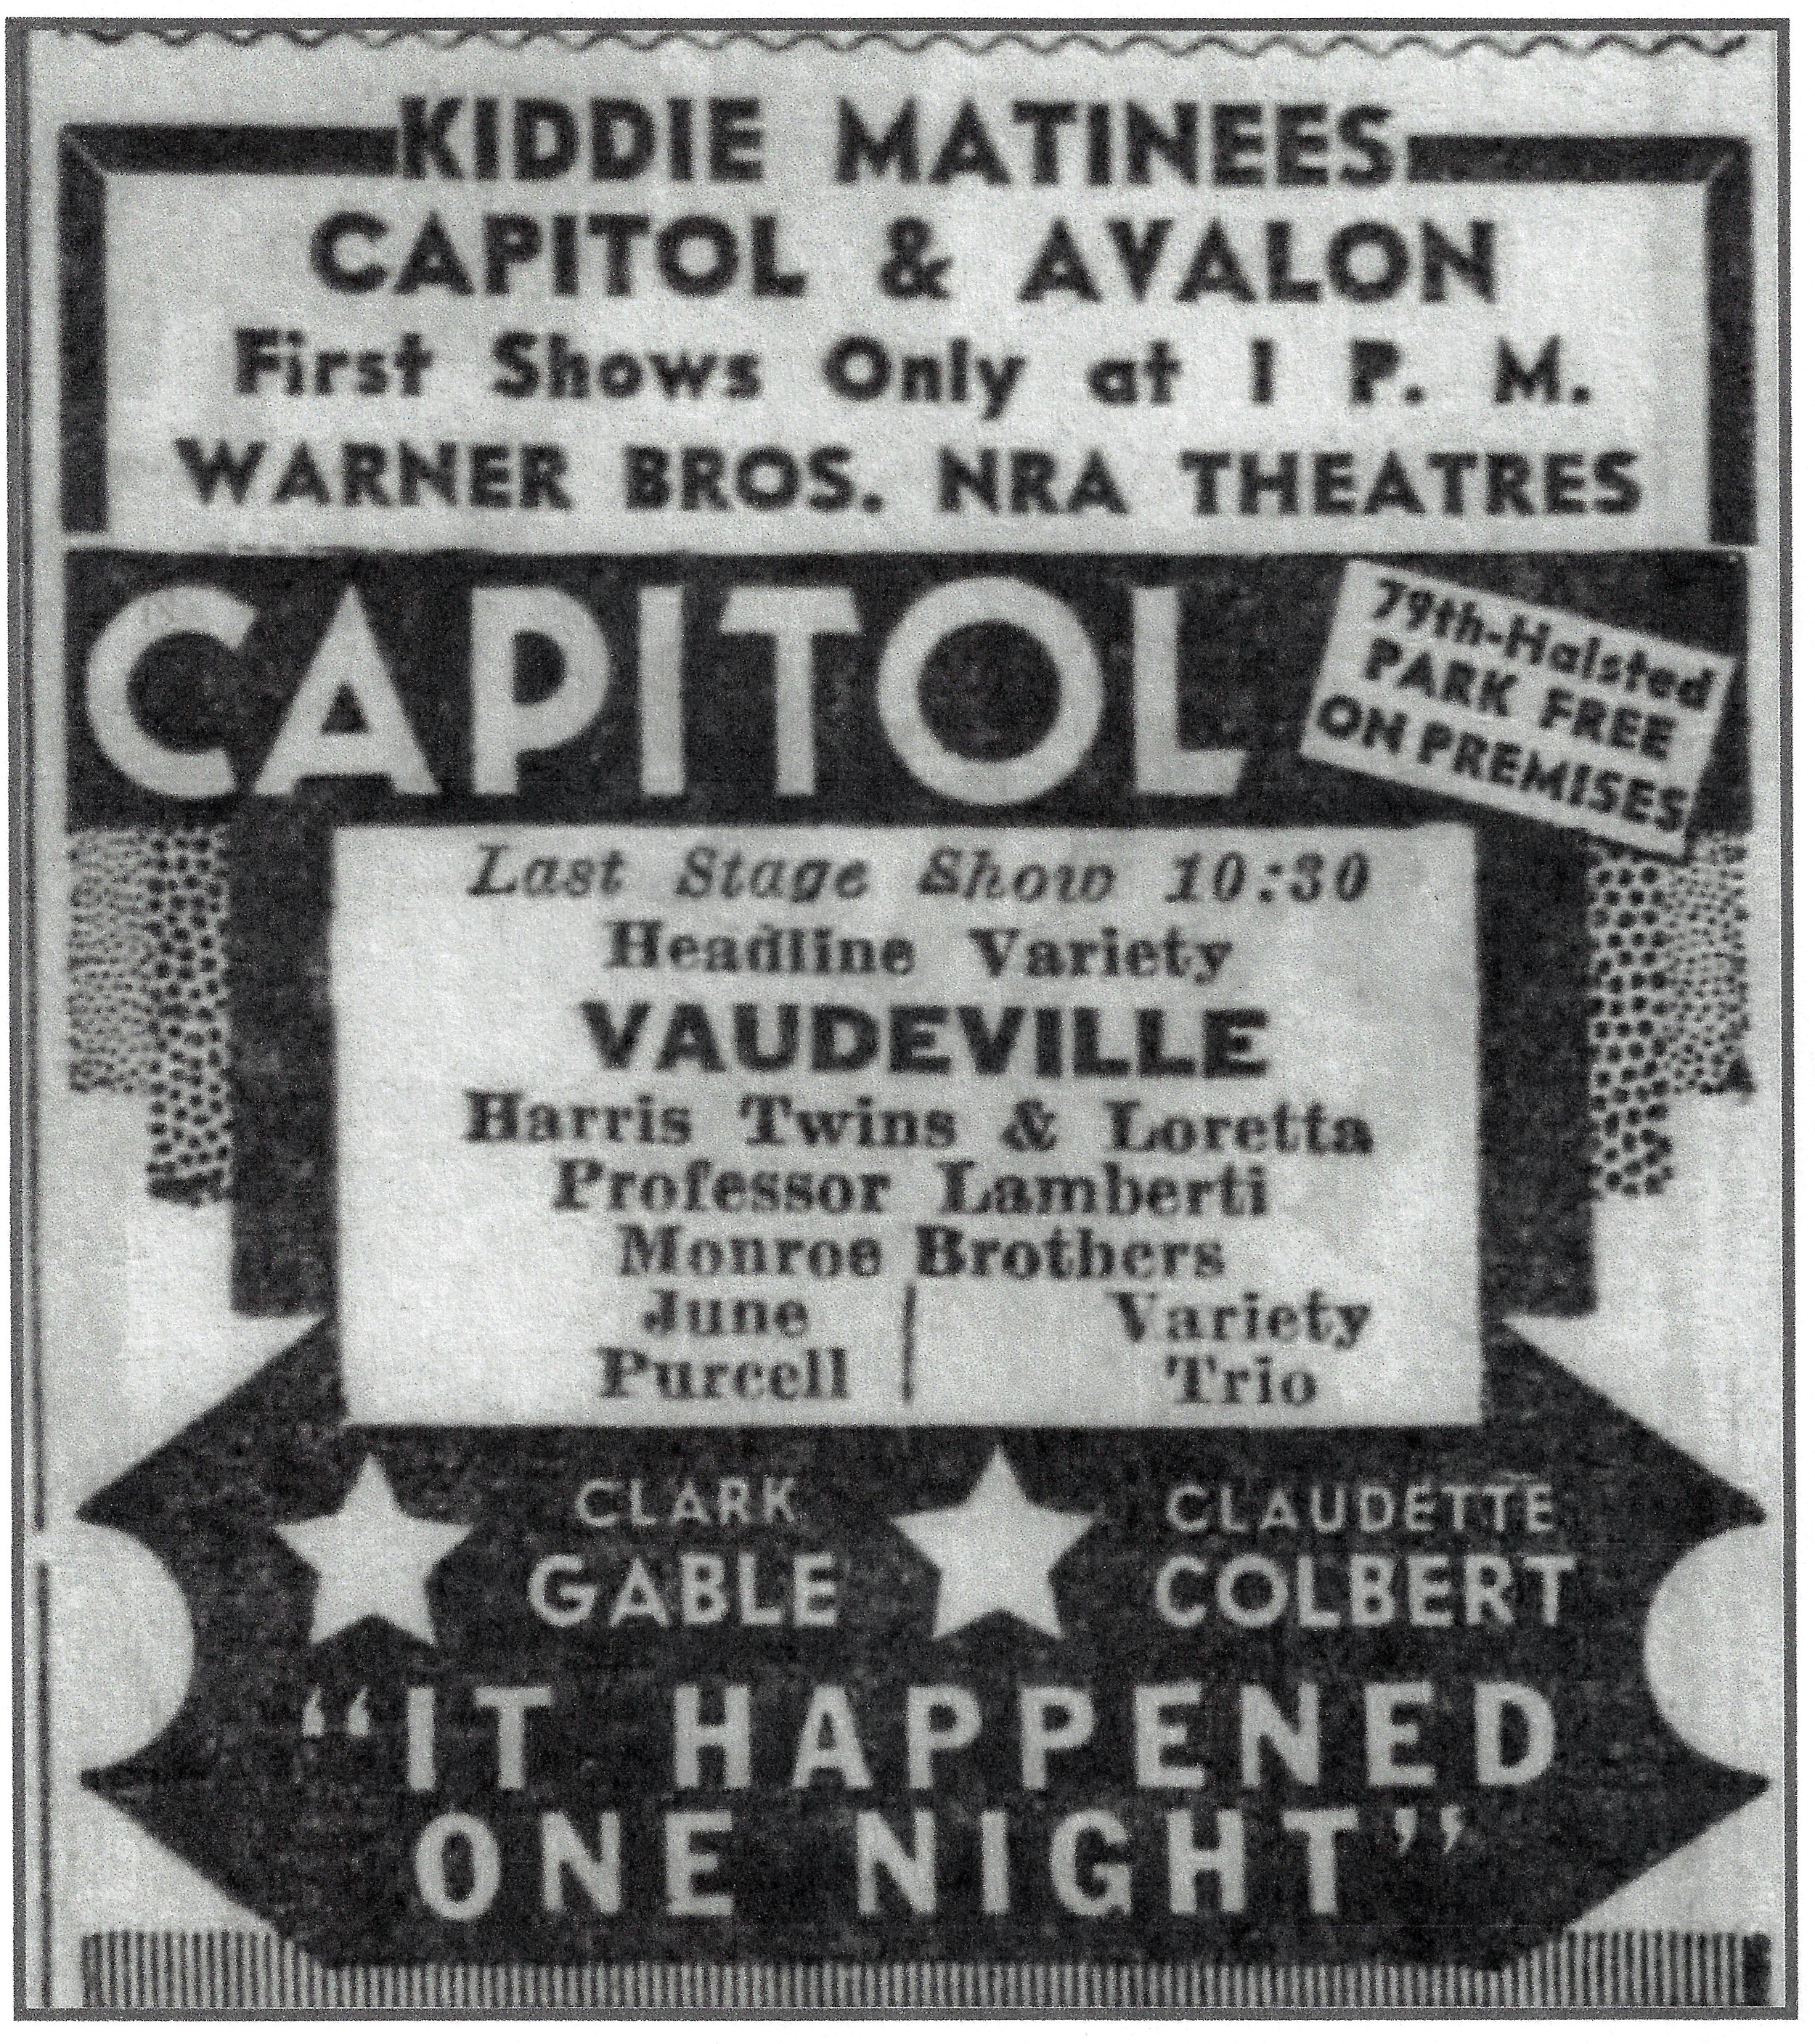 After gaining popularity by playing at dances, in churches, at birthday parties, and for events sponsored by local organizations, the Monroe Brothers spread out beyond Northwest Indiana and started appearing in Chicago. That included appearances on the vaudeville stage, at a time when they were still near the bottom of the bill. This ad is from 1934.